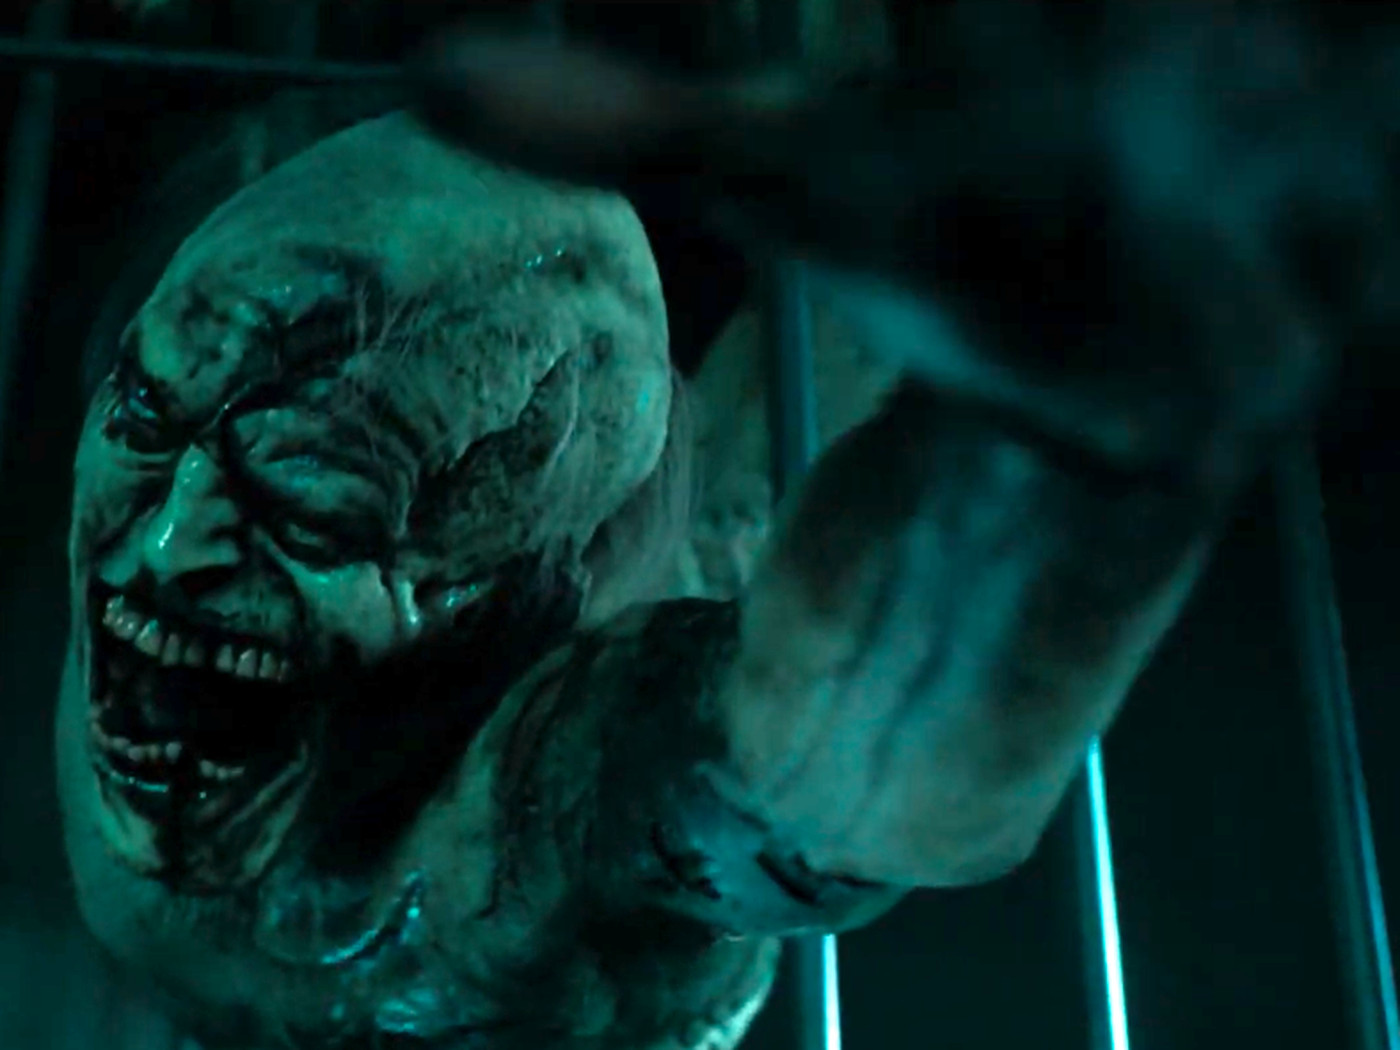 Scary Stories To Tell In The Dark Trailer As Disturbing As The